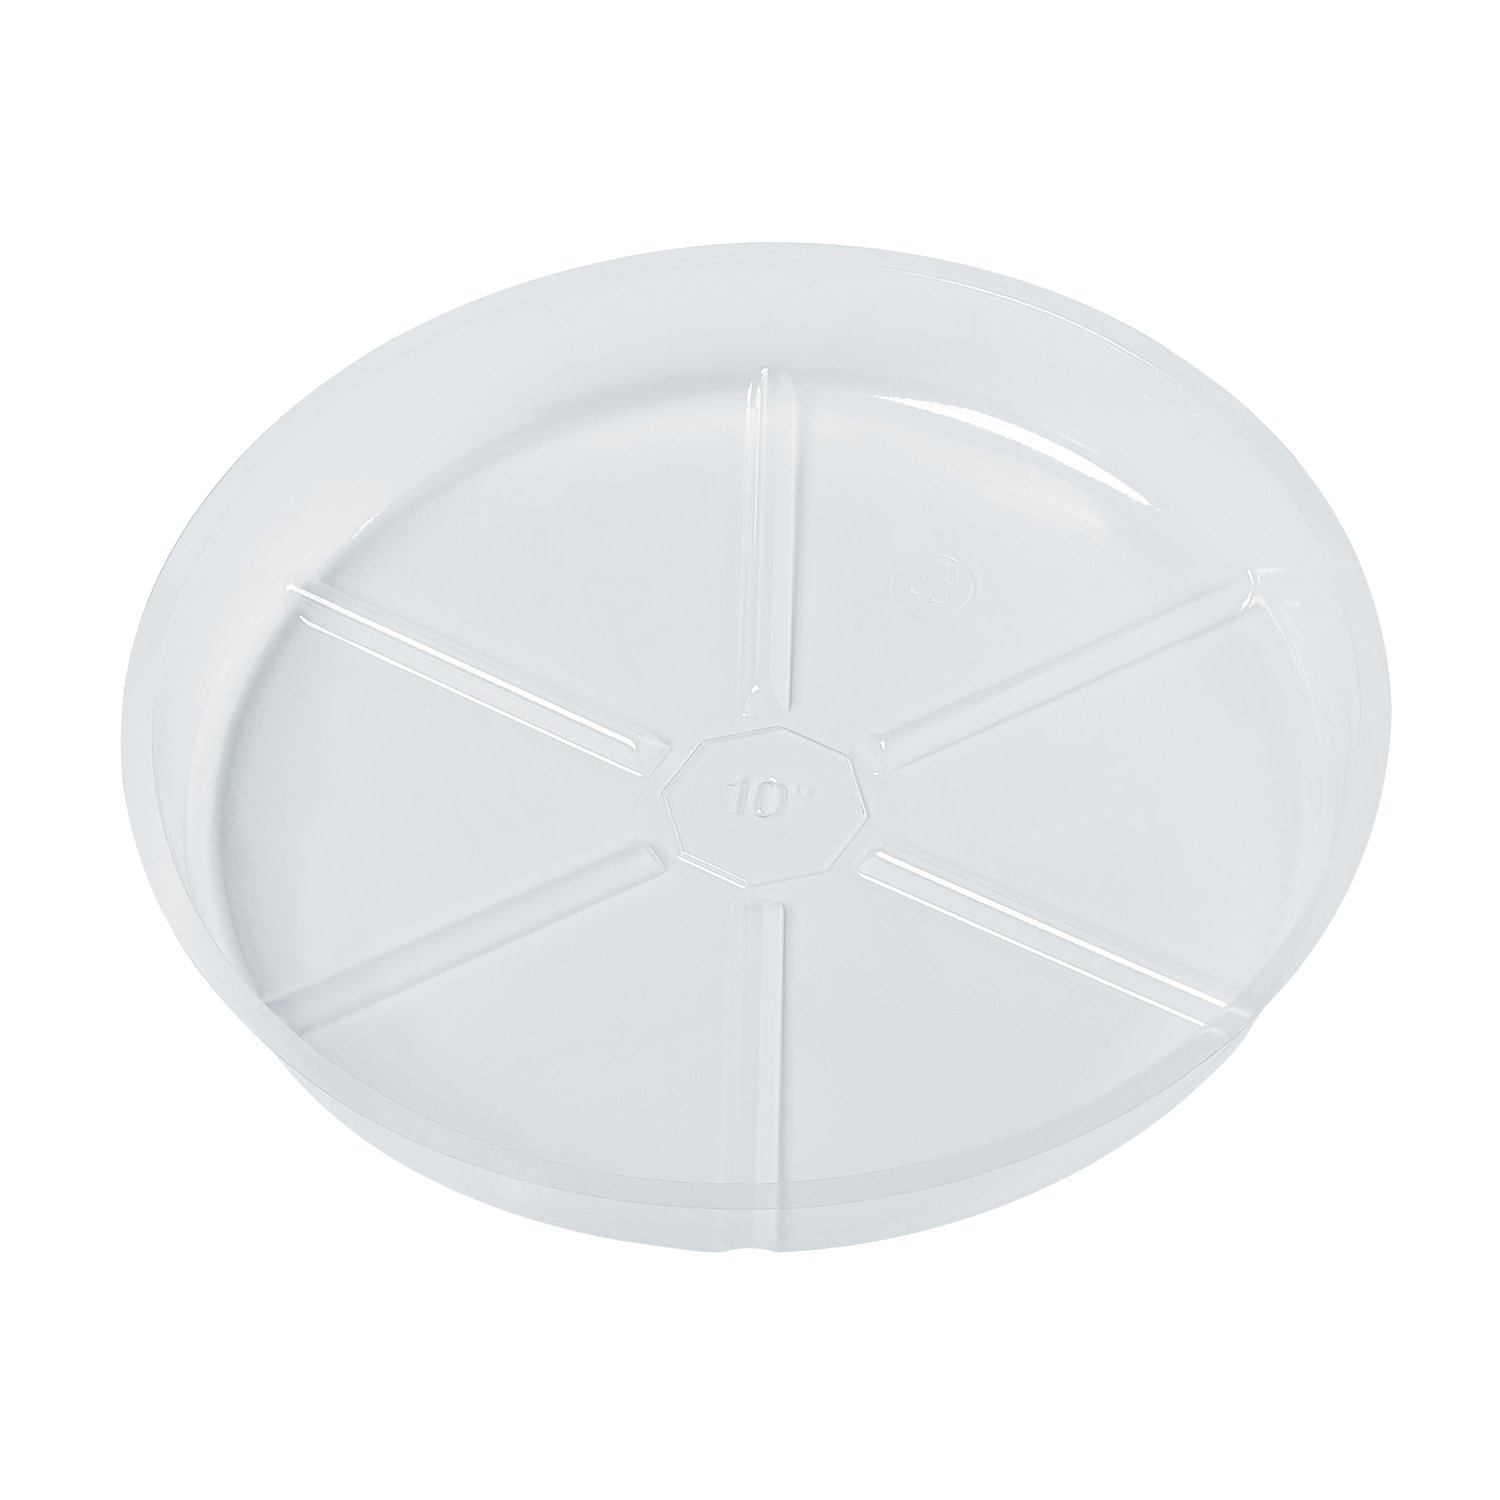 10 Pack of 10 inch, Clear Vinyl Plant Saucers, Surface Protection for Household Plants (OBVS10'')